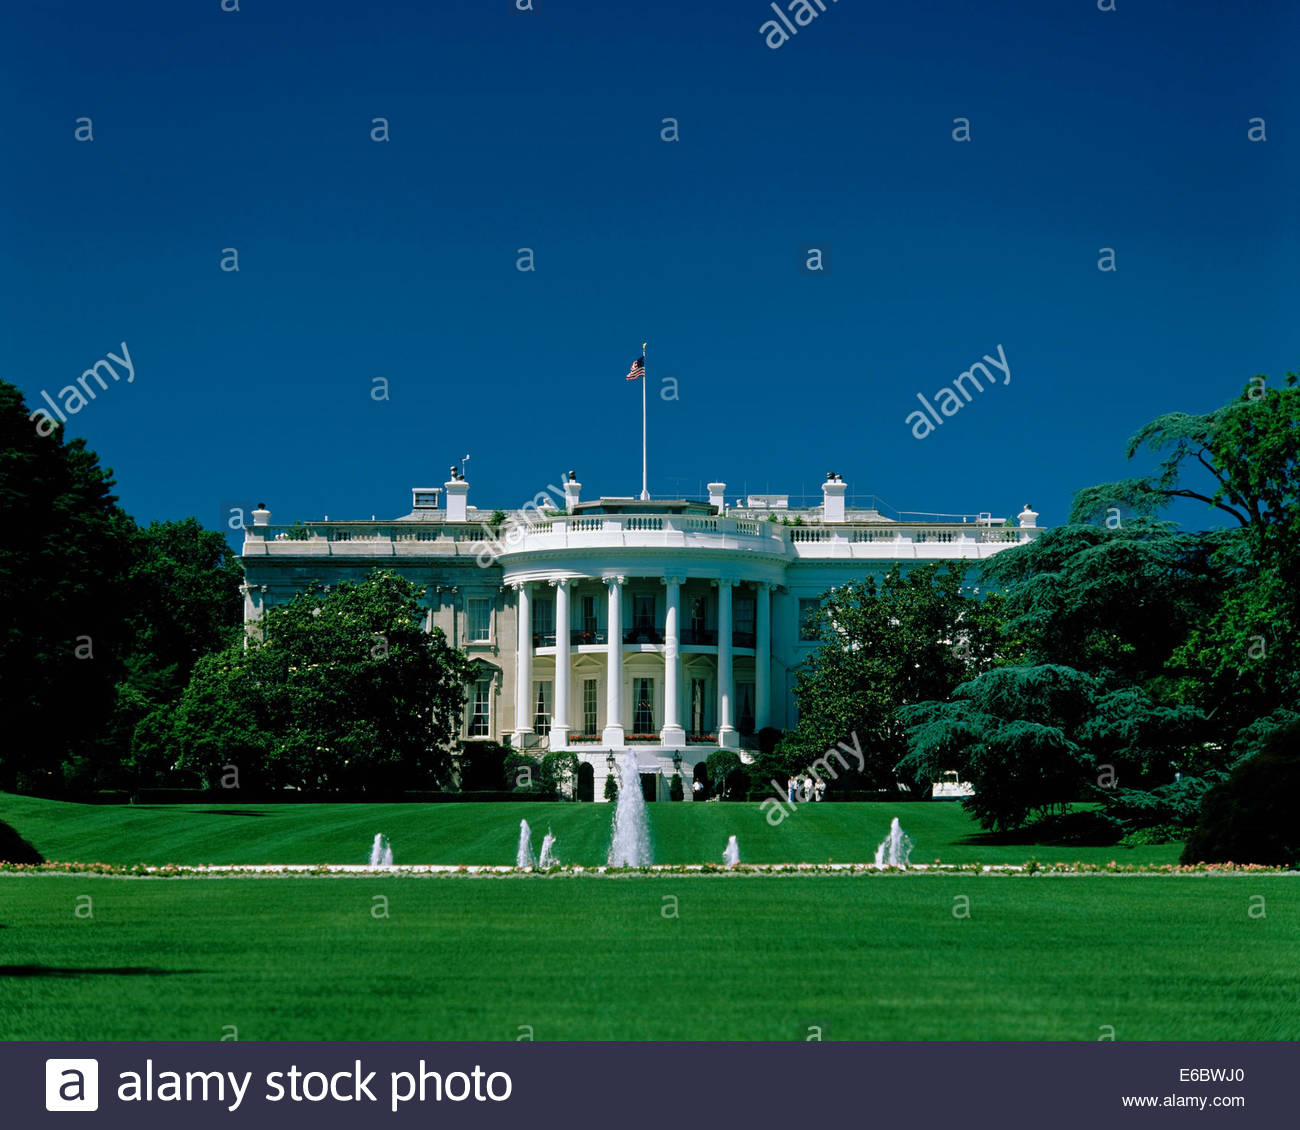 The south lawn of the White House in Washington DC USA Stock Photo